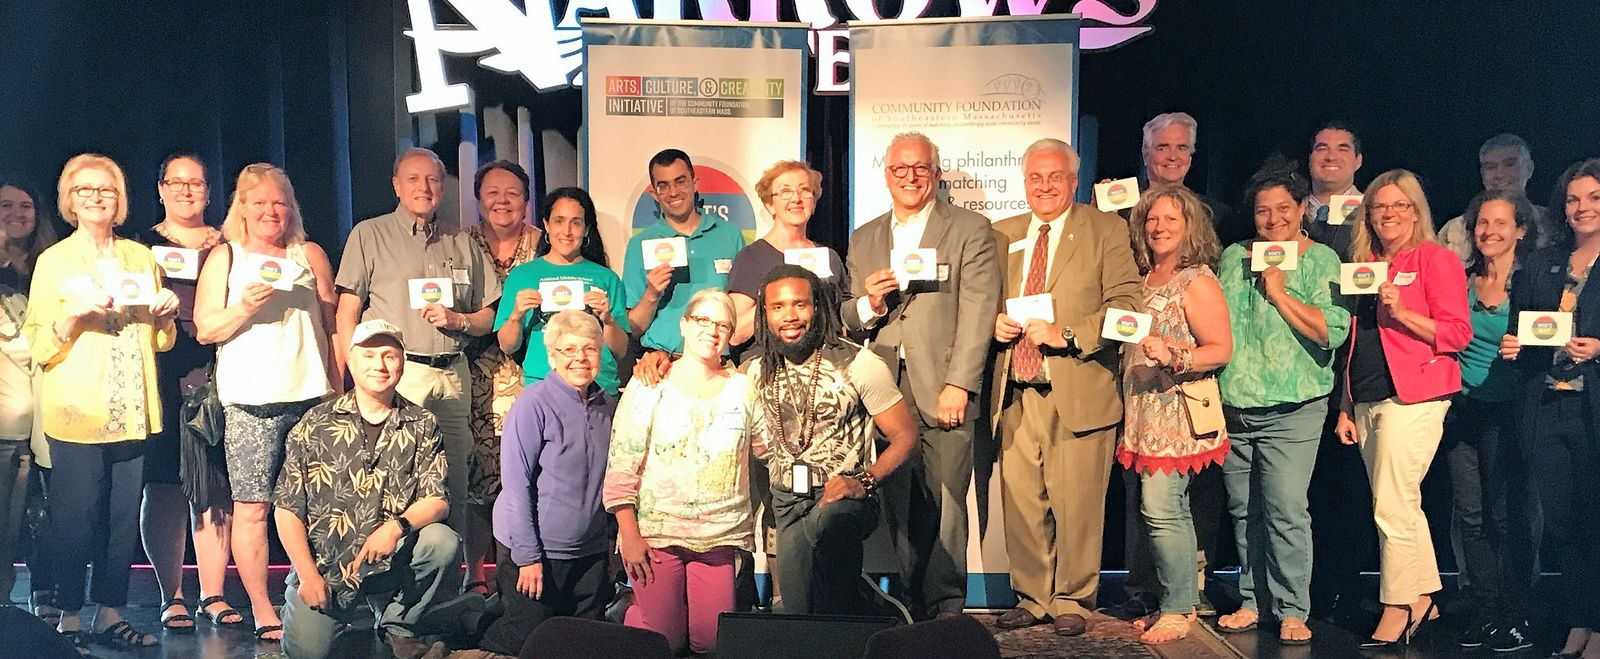 A group of adults pose on a stage to support a fundraiser for a community foundation.